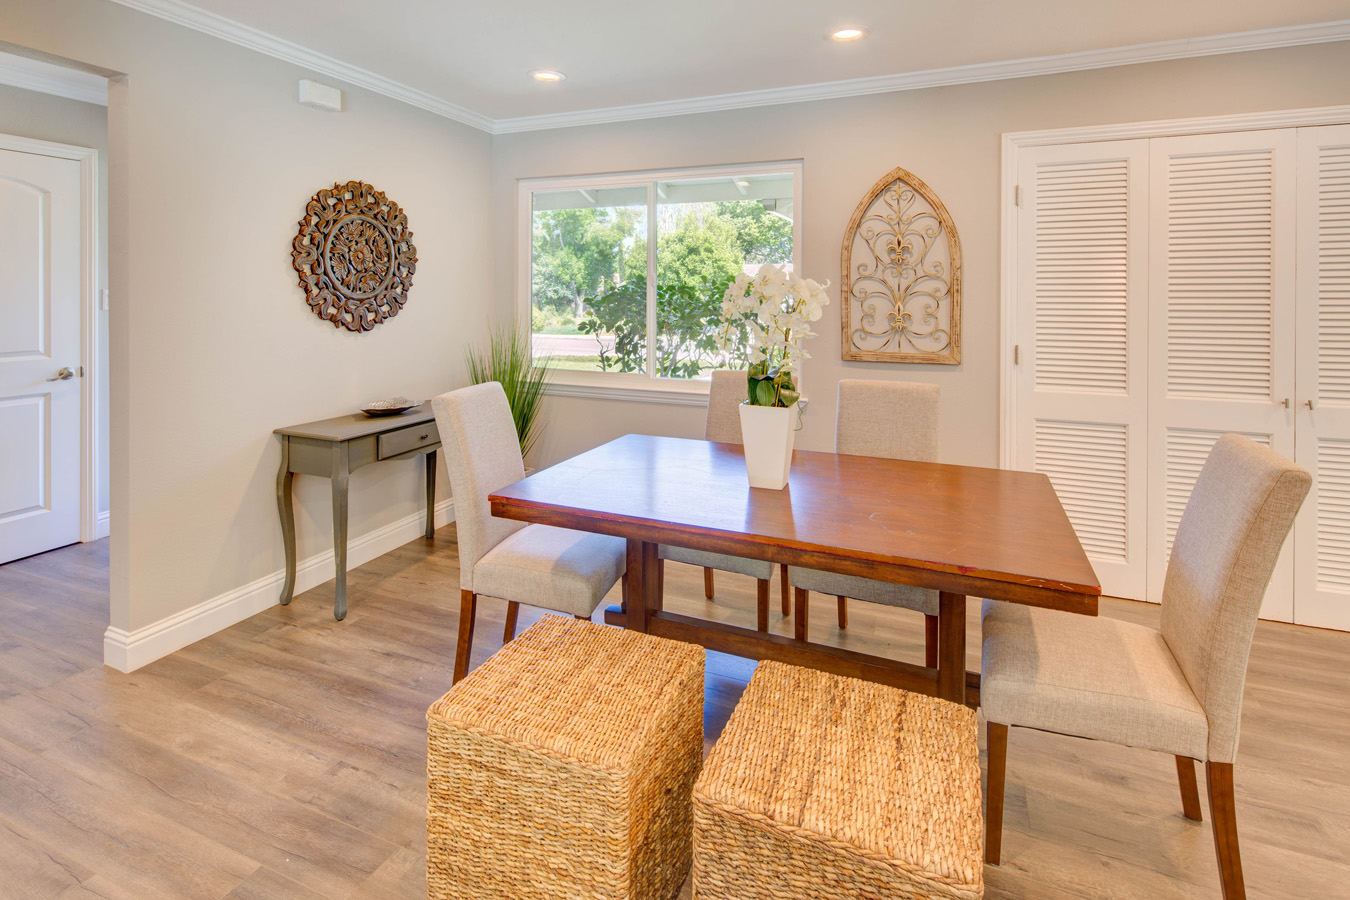 321 Pickering Place, Walnut Creek, CA 94598